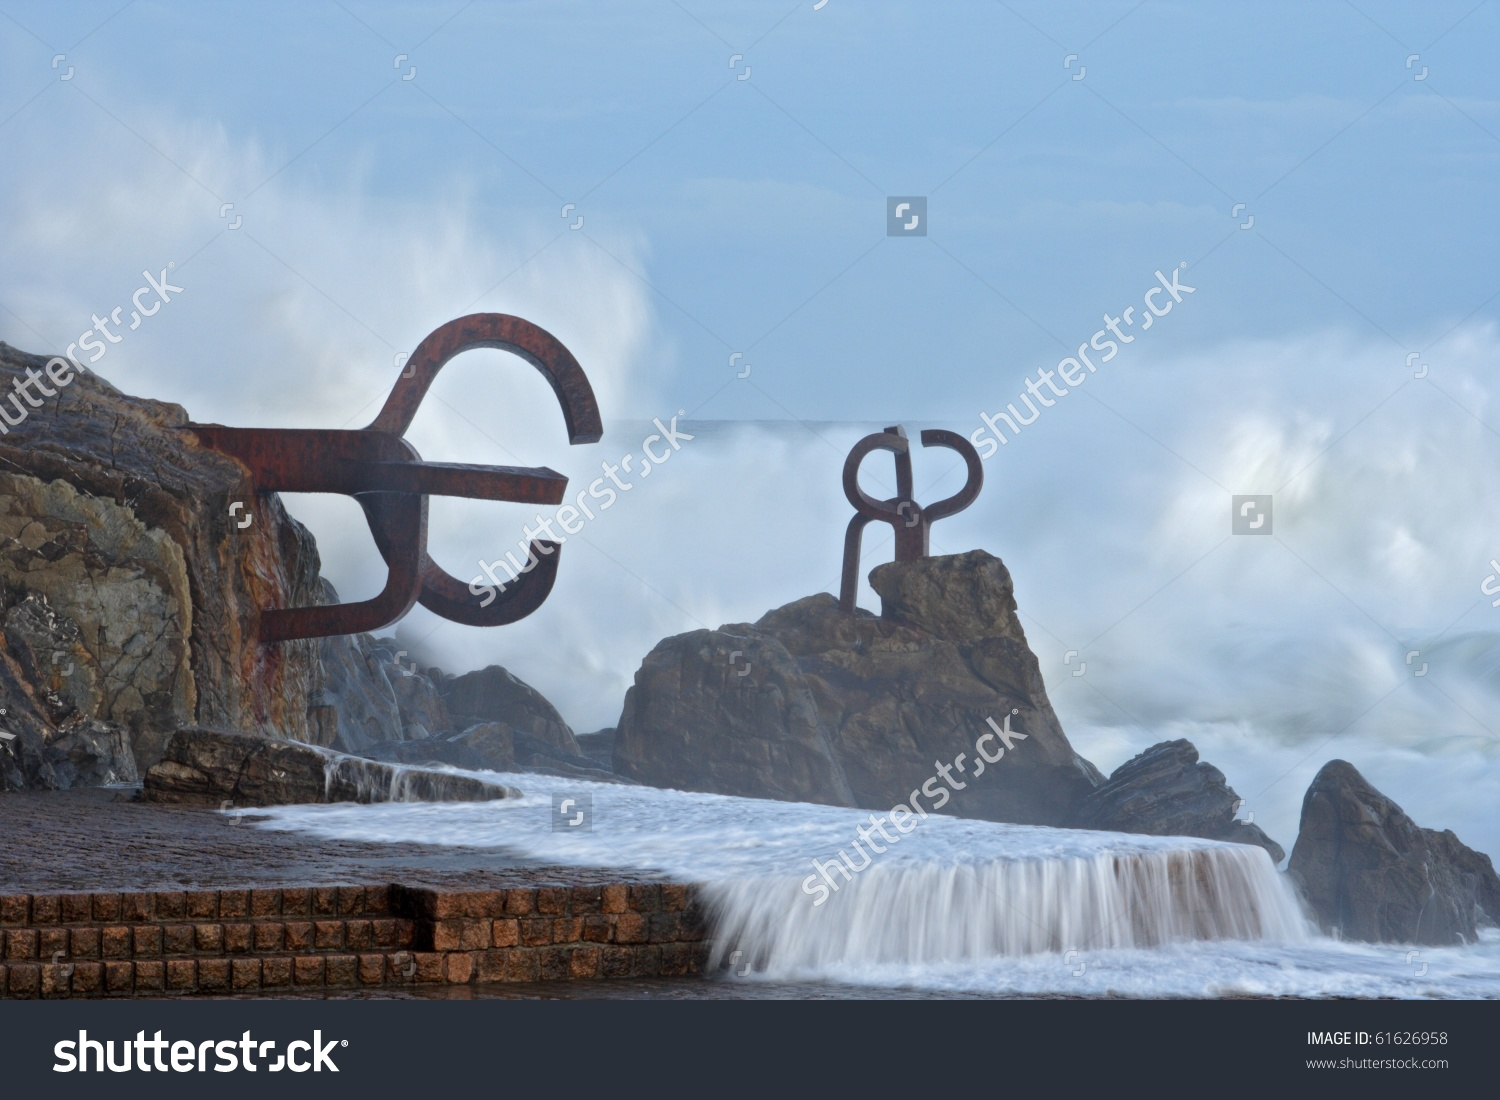 Comb Of The Wind (Chillida) In Donostia.